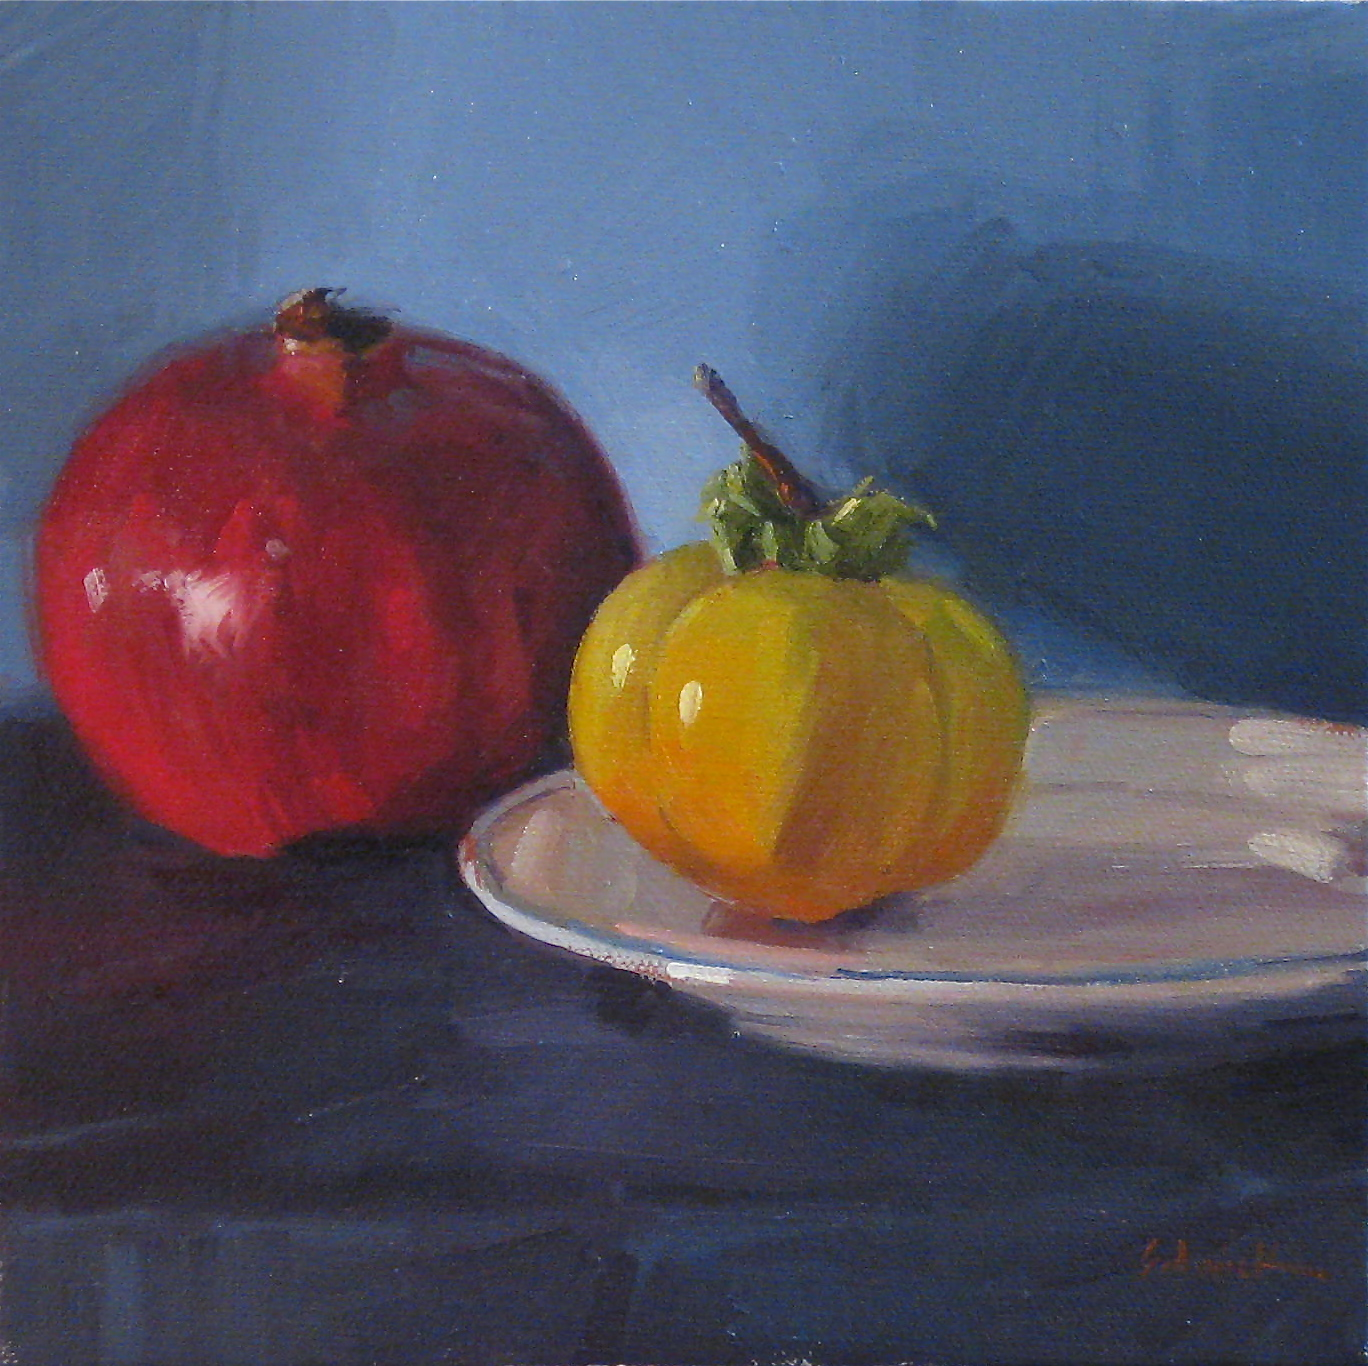 """Pomegranate and Persimmon on Blue"" original fine art by Sarah Sedwick"